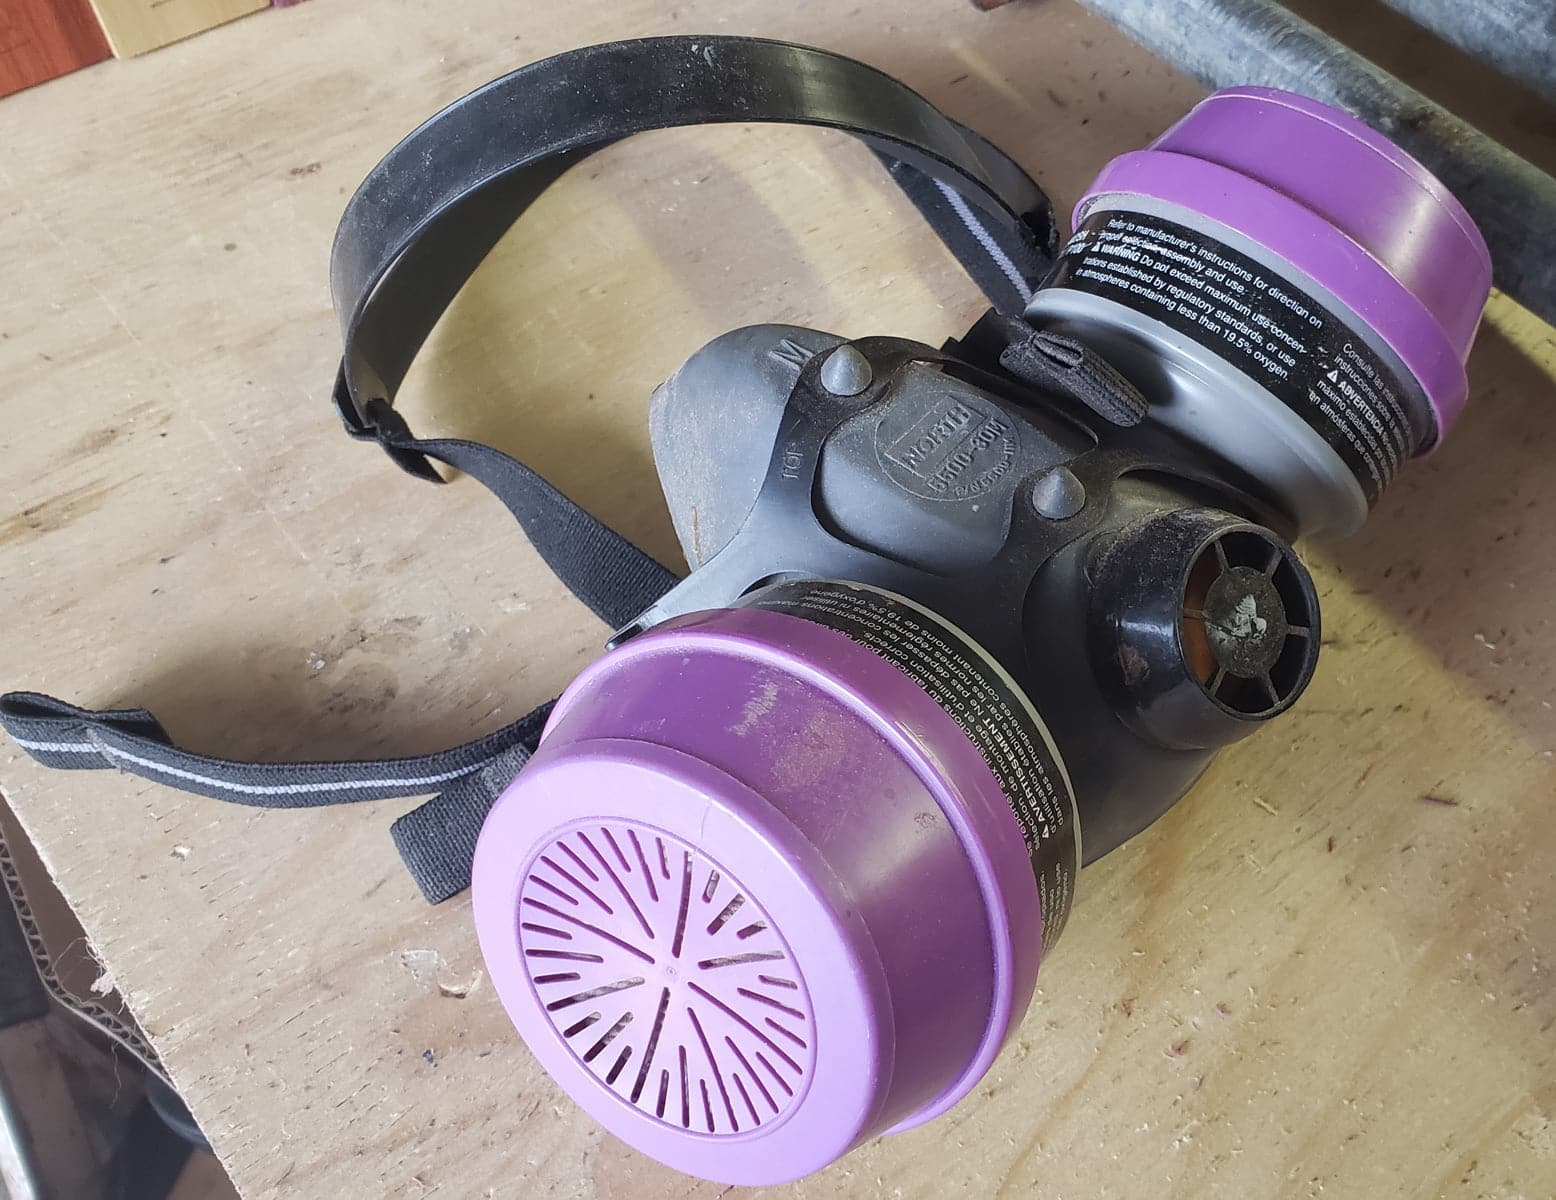 A half mask respirator. The outer cartridges are purple.